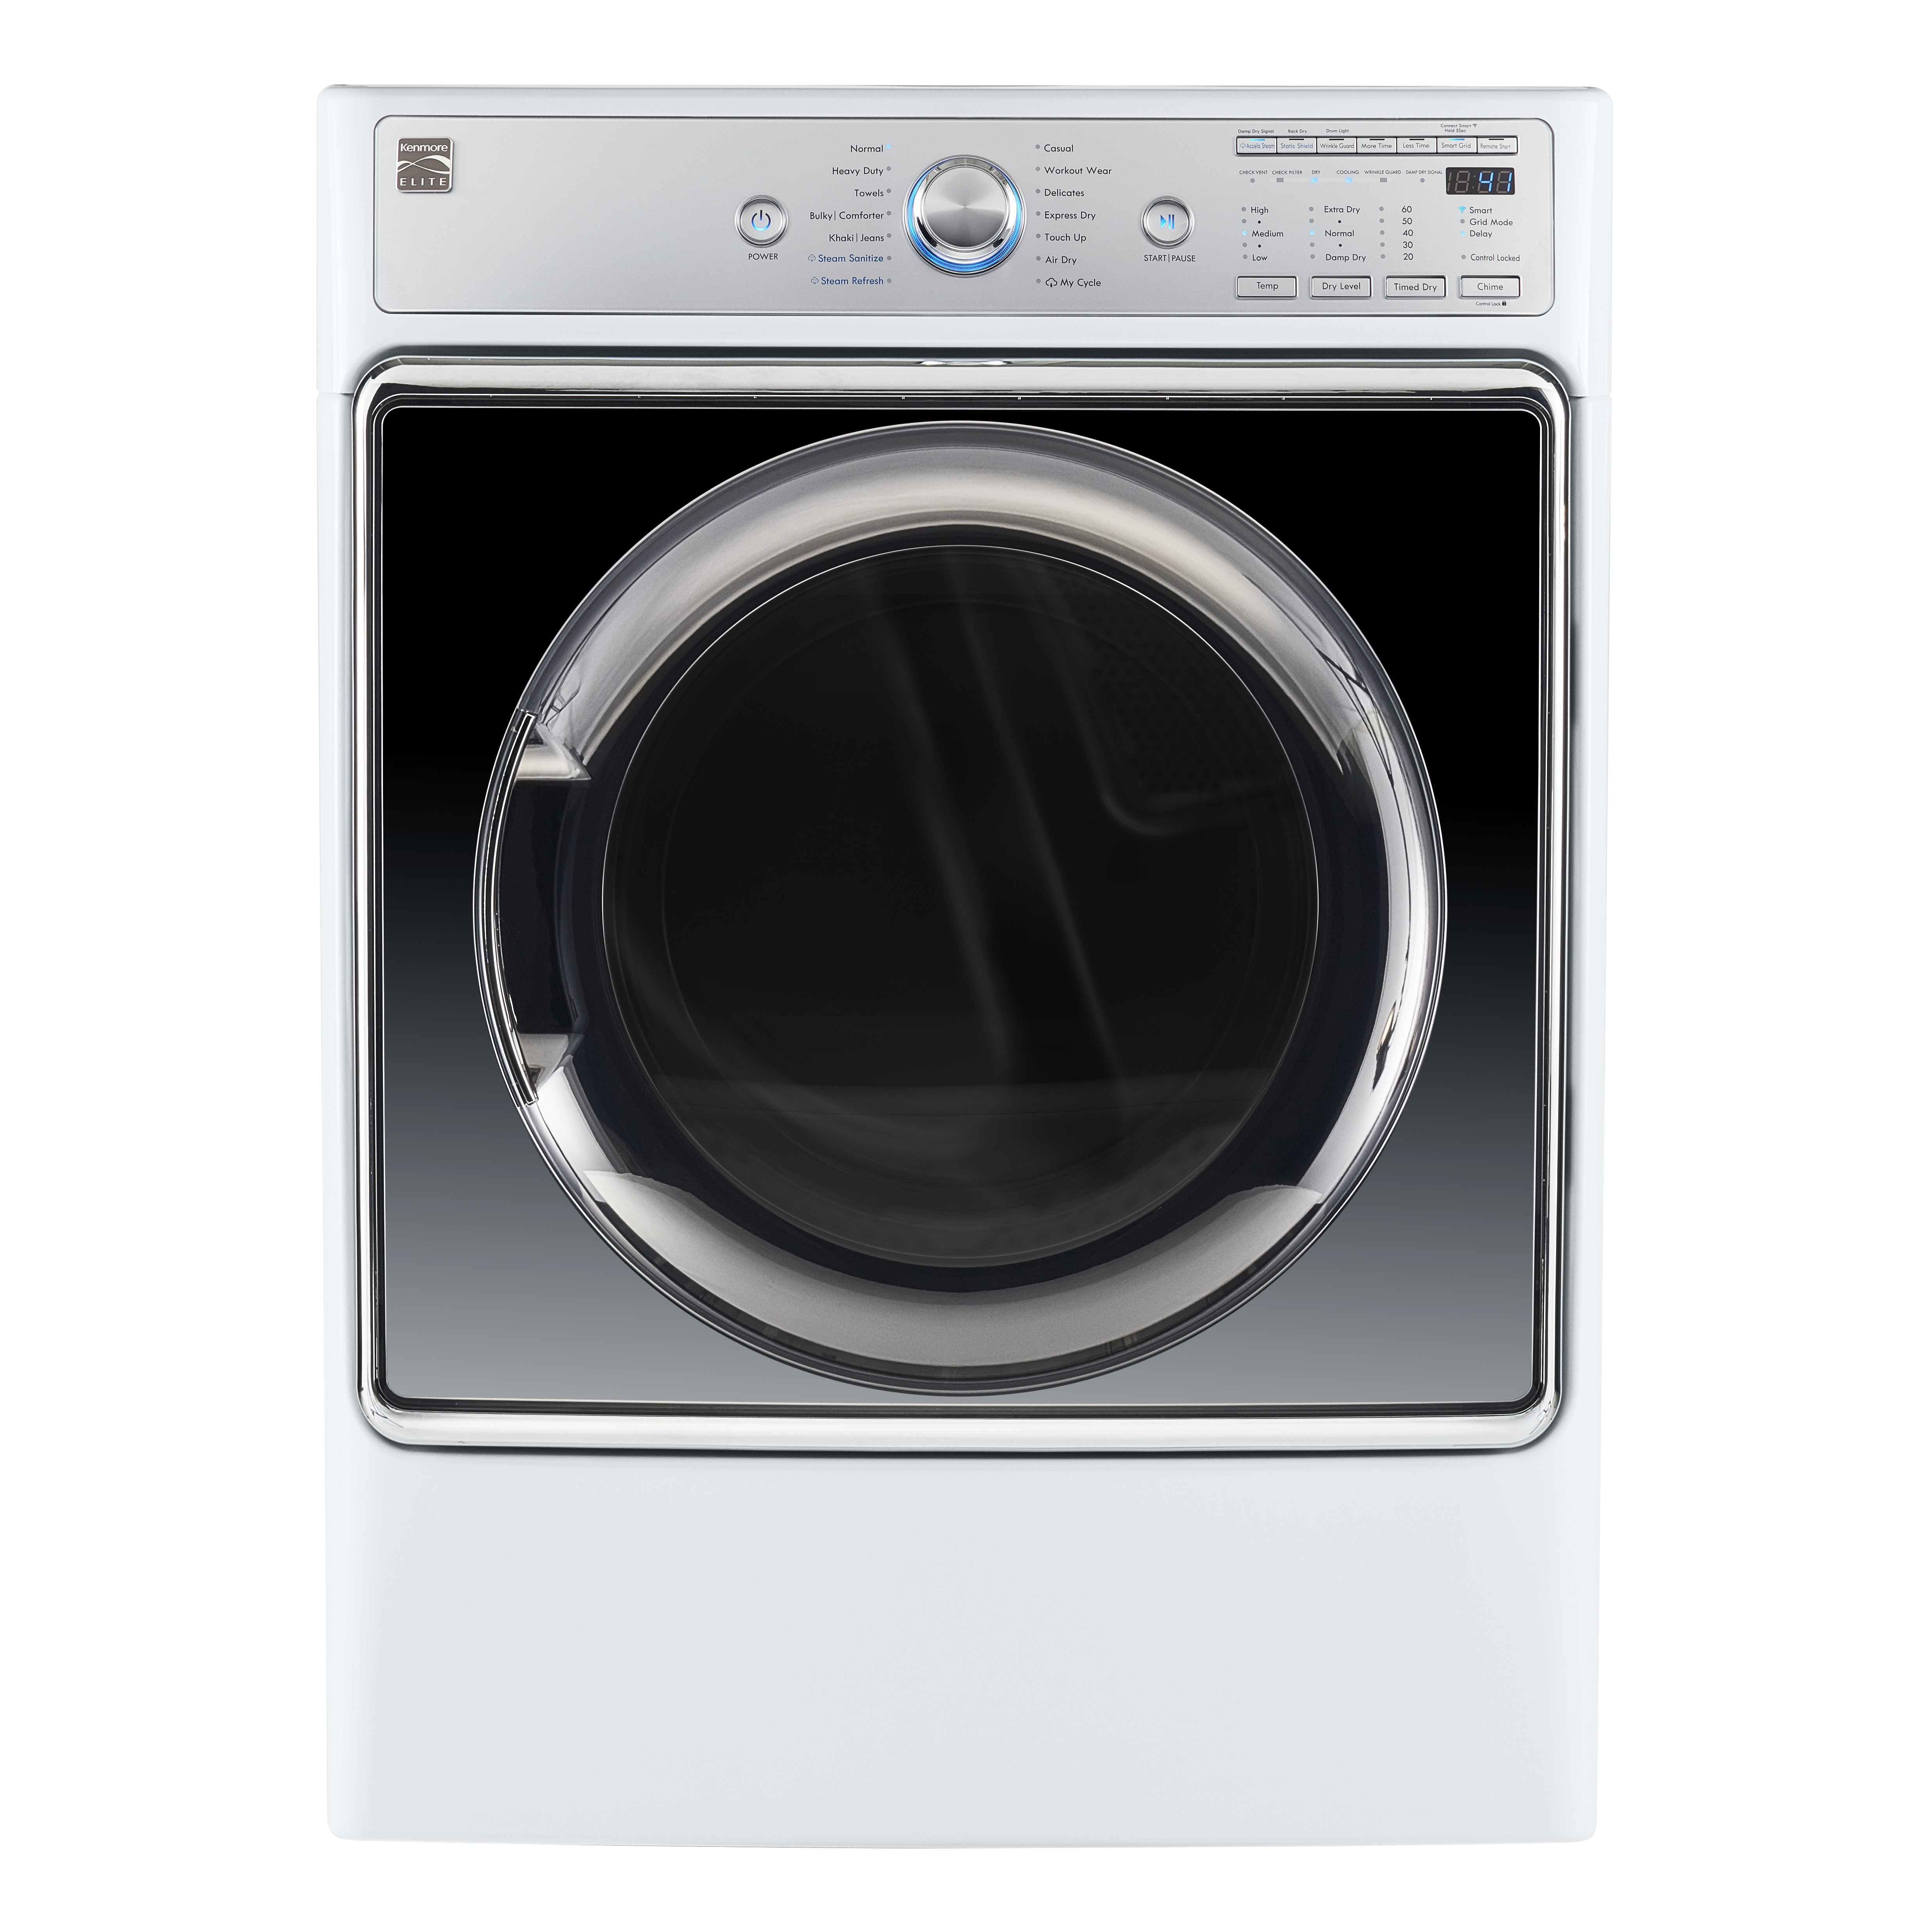 kenmore elite 91982 9 0 cu ft smart gas dryer w accela steam gas dryer i d be happy for any sears gas dryer diagram just to [ 4944 x 4944 Pixel ]